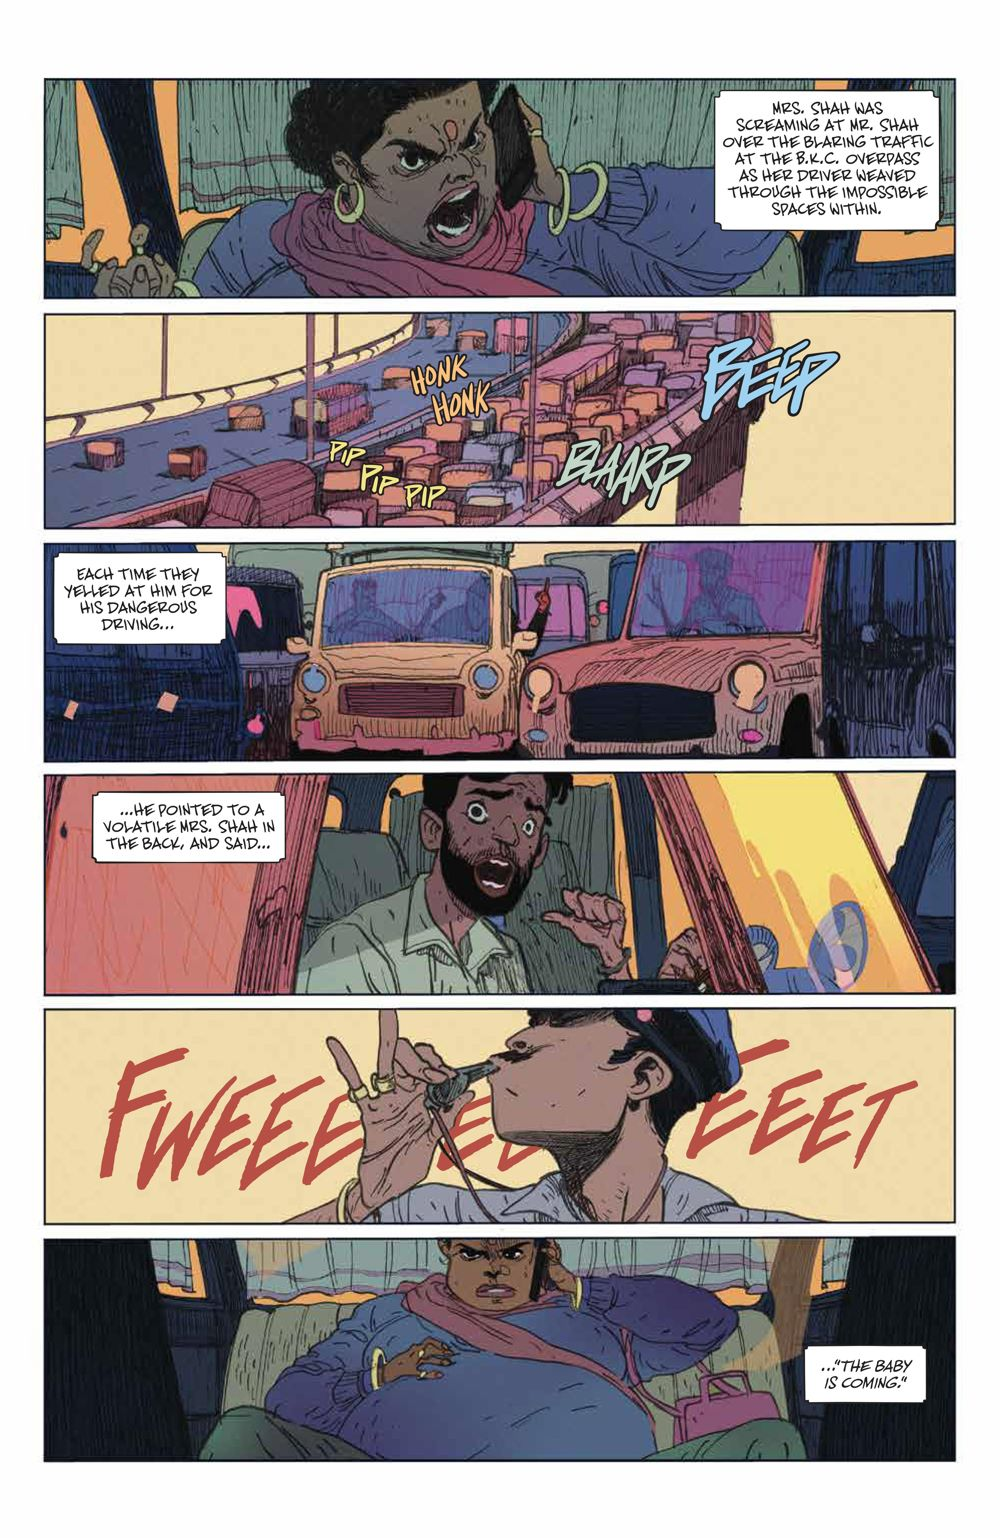 ManyDeathsLailaStarr_001_PRESS_4 ComicList Previews: THE MANY DEATHS OF LAILA STARR #1